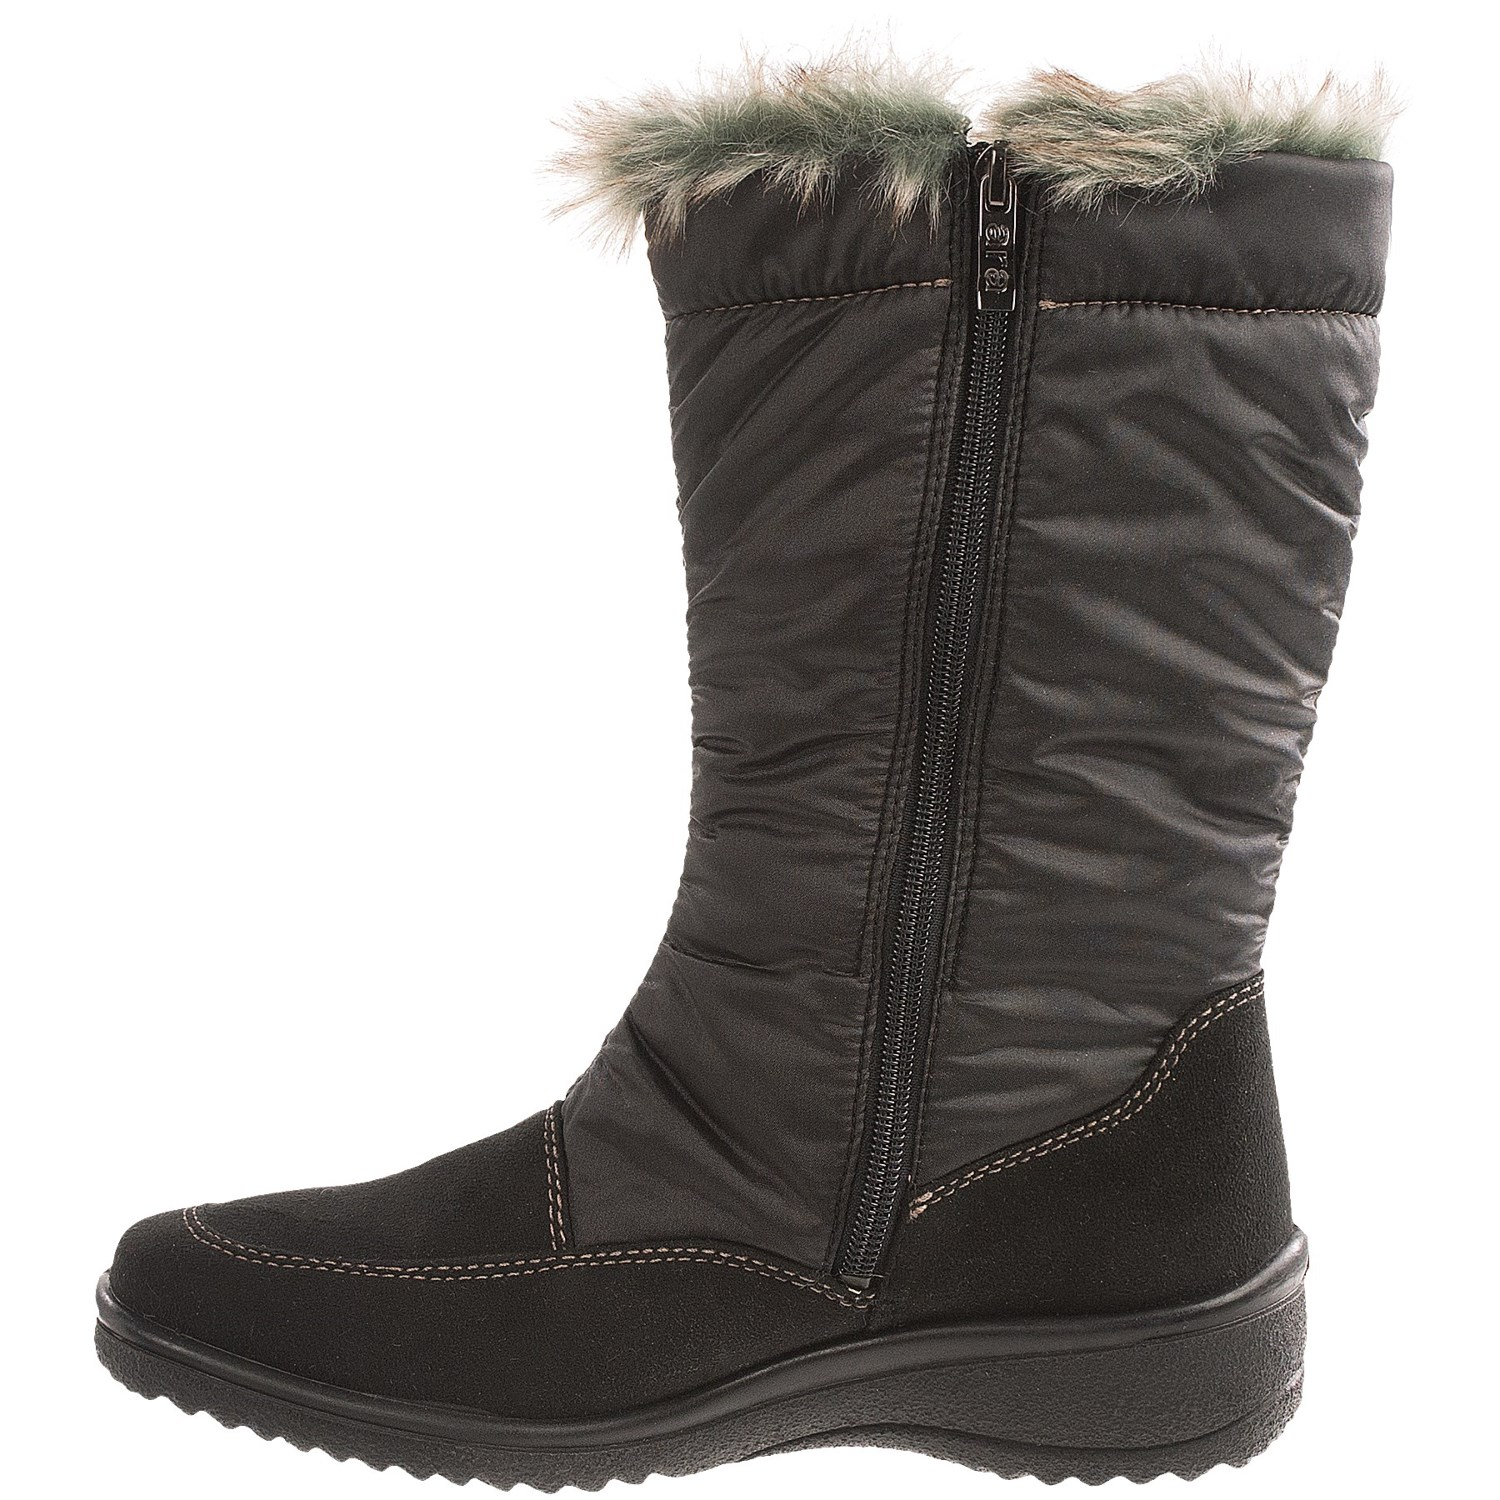 Ara Marla Gore-Tex® Snow Boots (For Women) 8005C - Save 67%